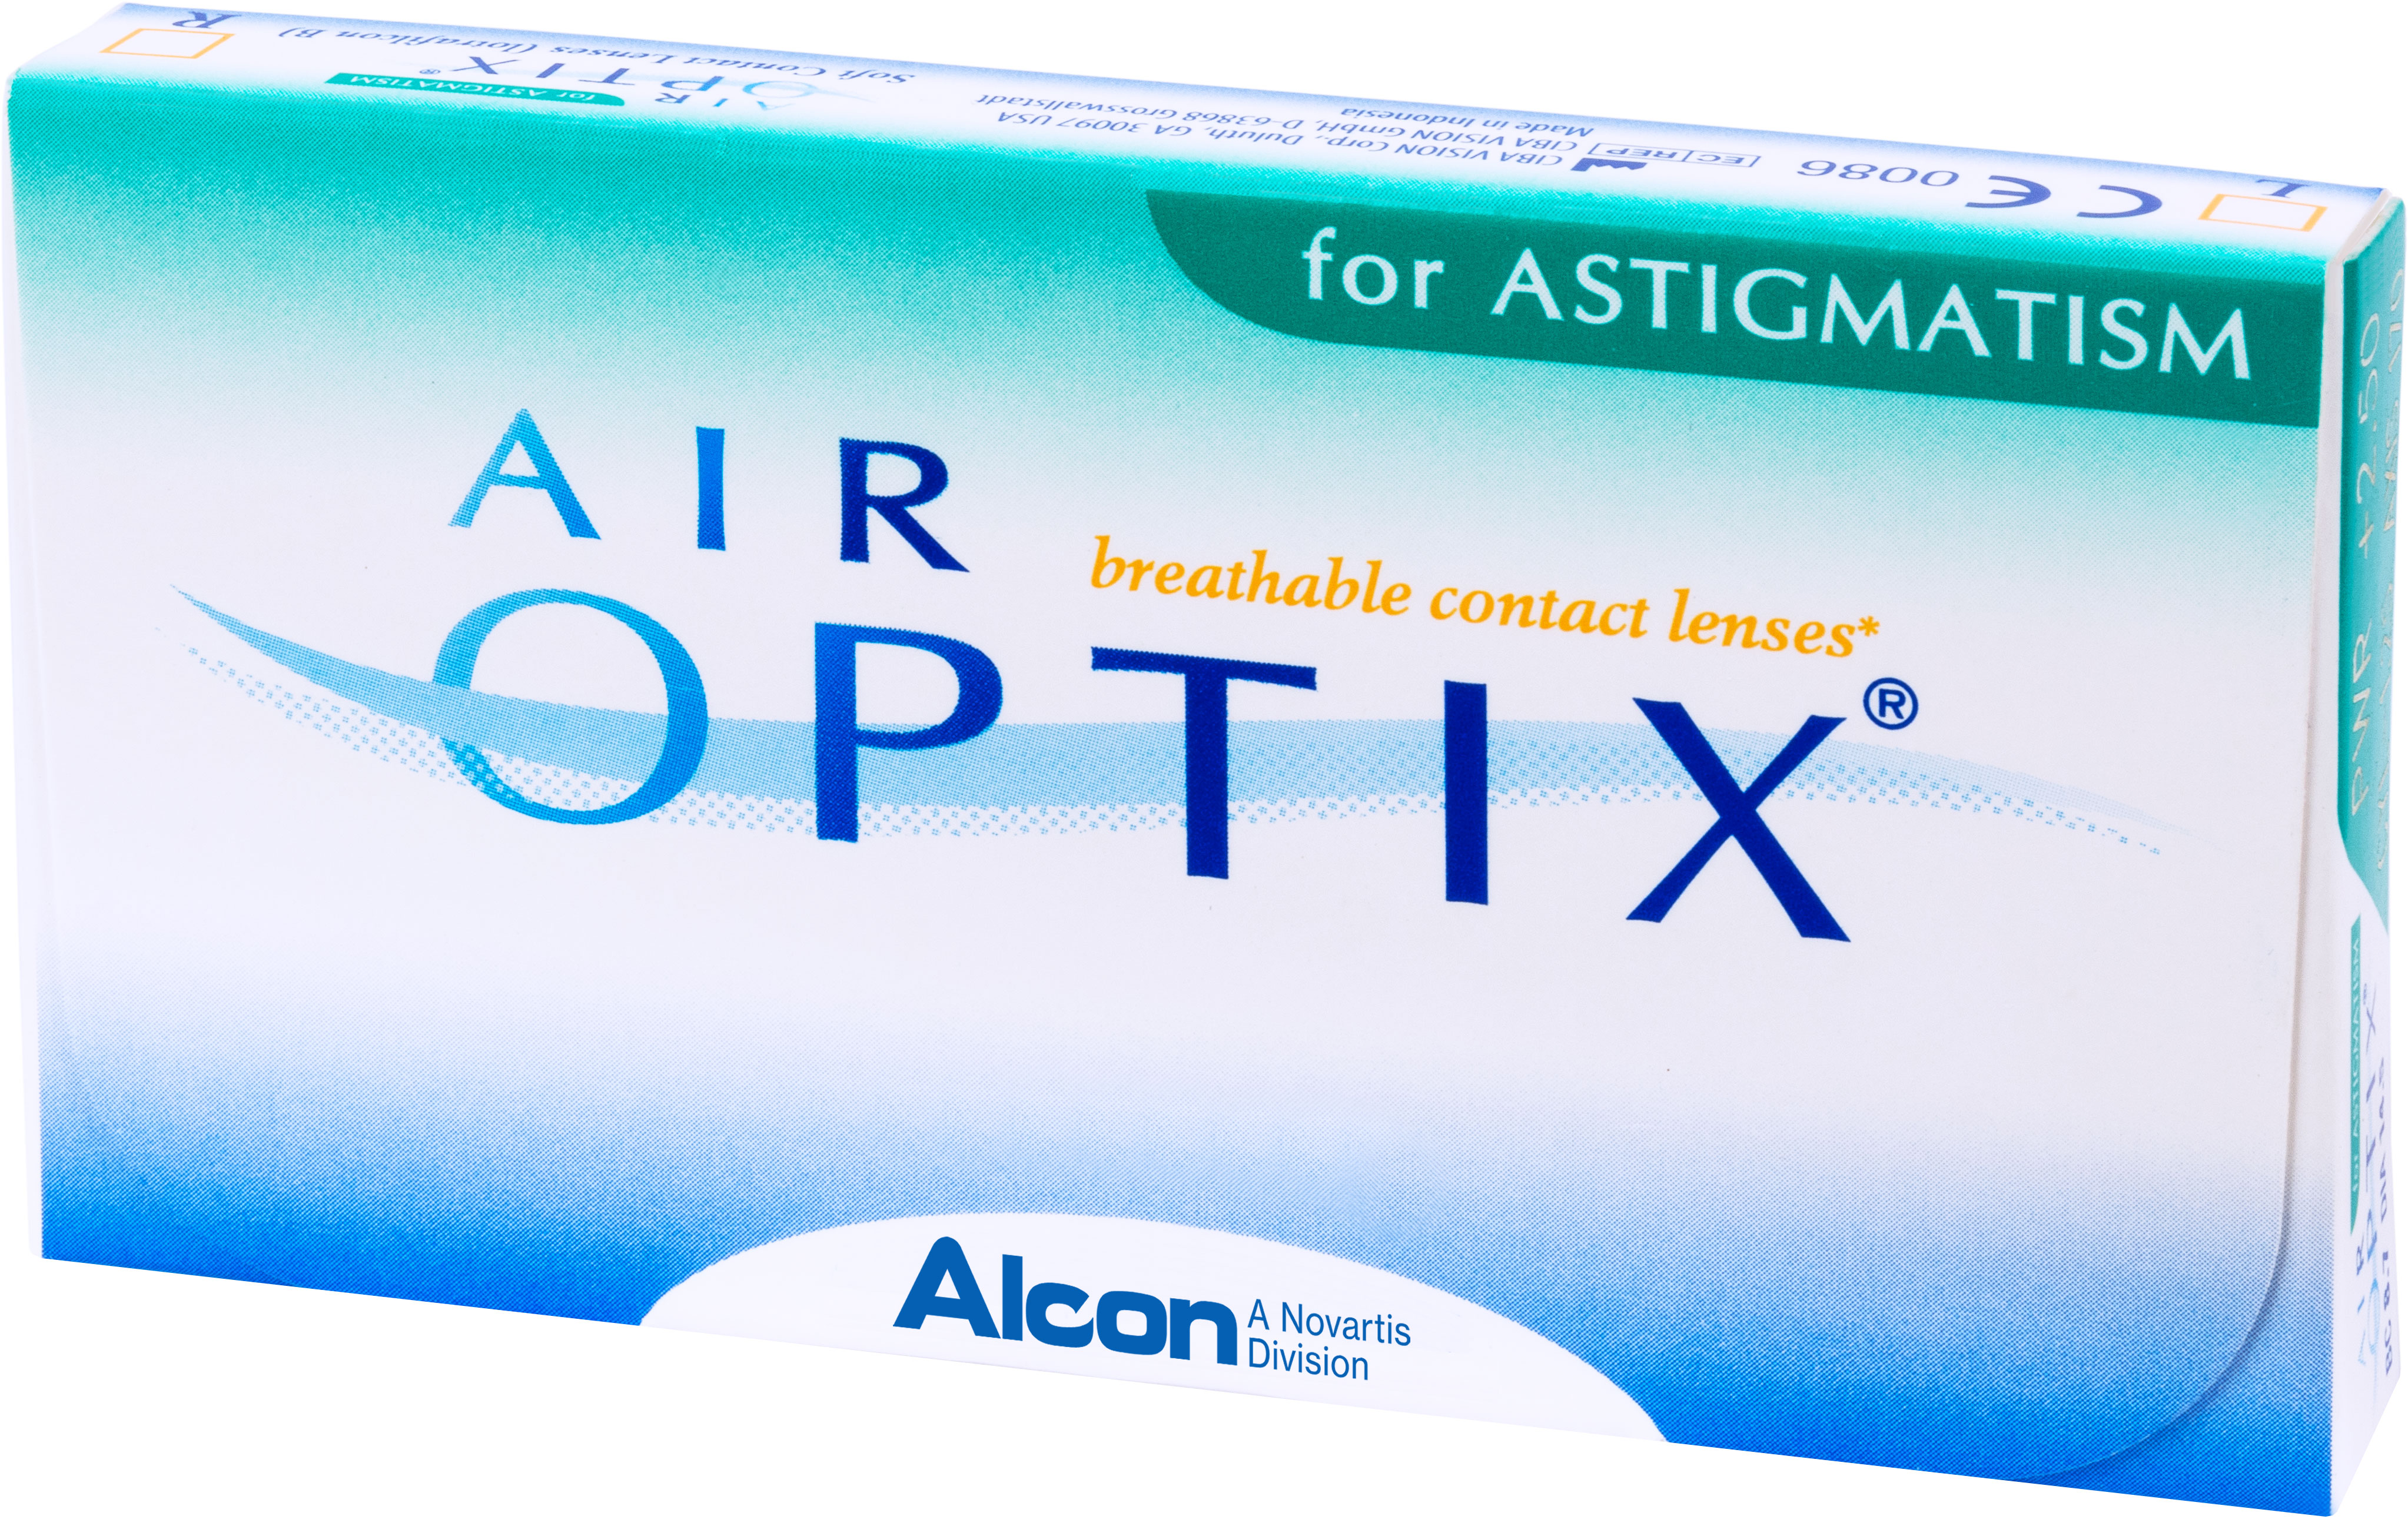 Аlcon контактные линзы Air Optix for Astigmatism 3pk /BC 8.7/DIA14.5/PWR +6.00/CYL -0.75/AXIS 60100017692with Hydraclear